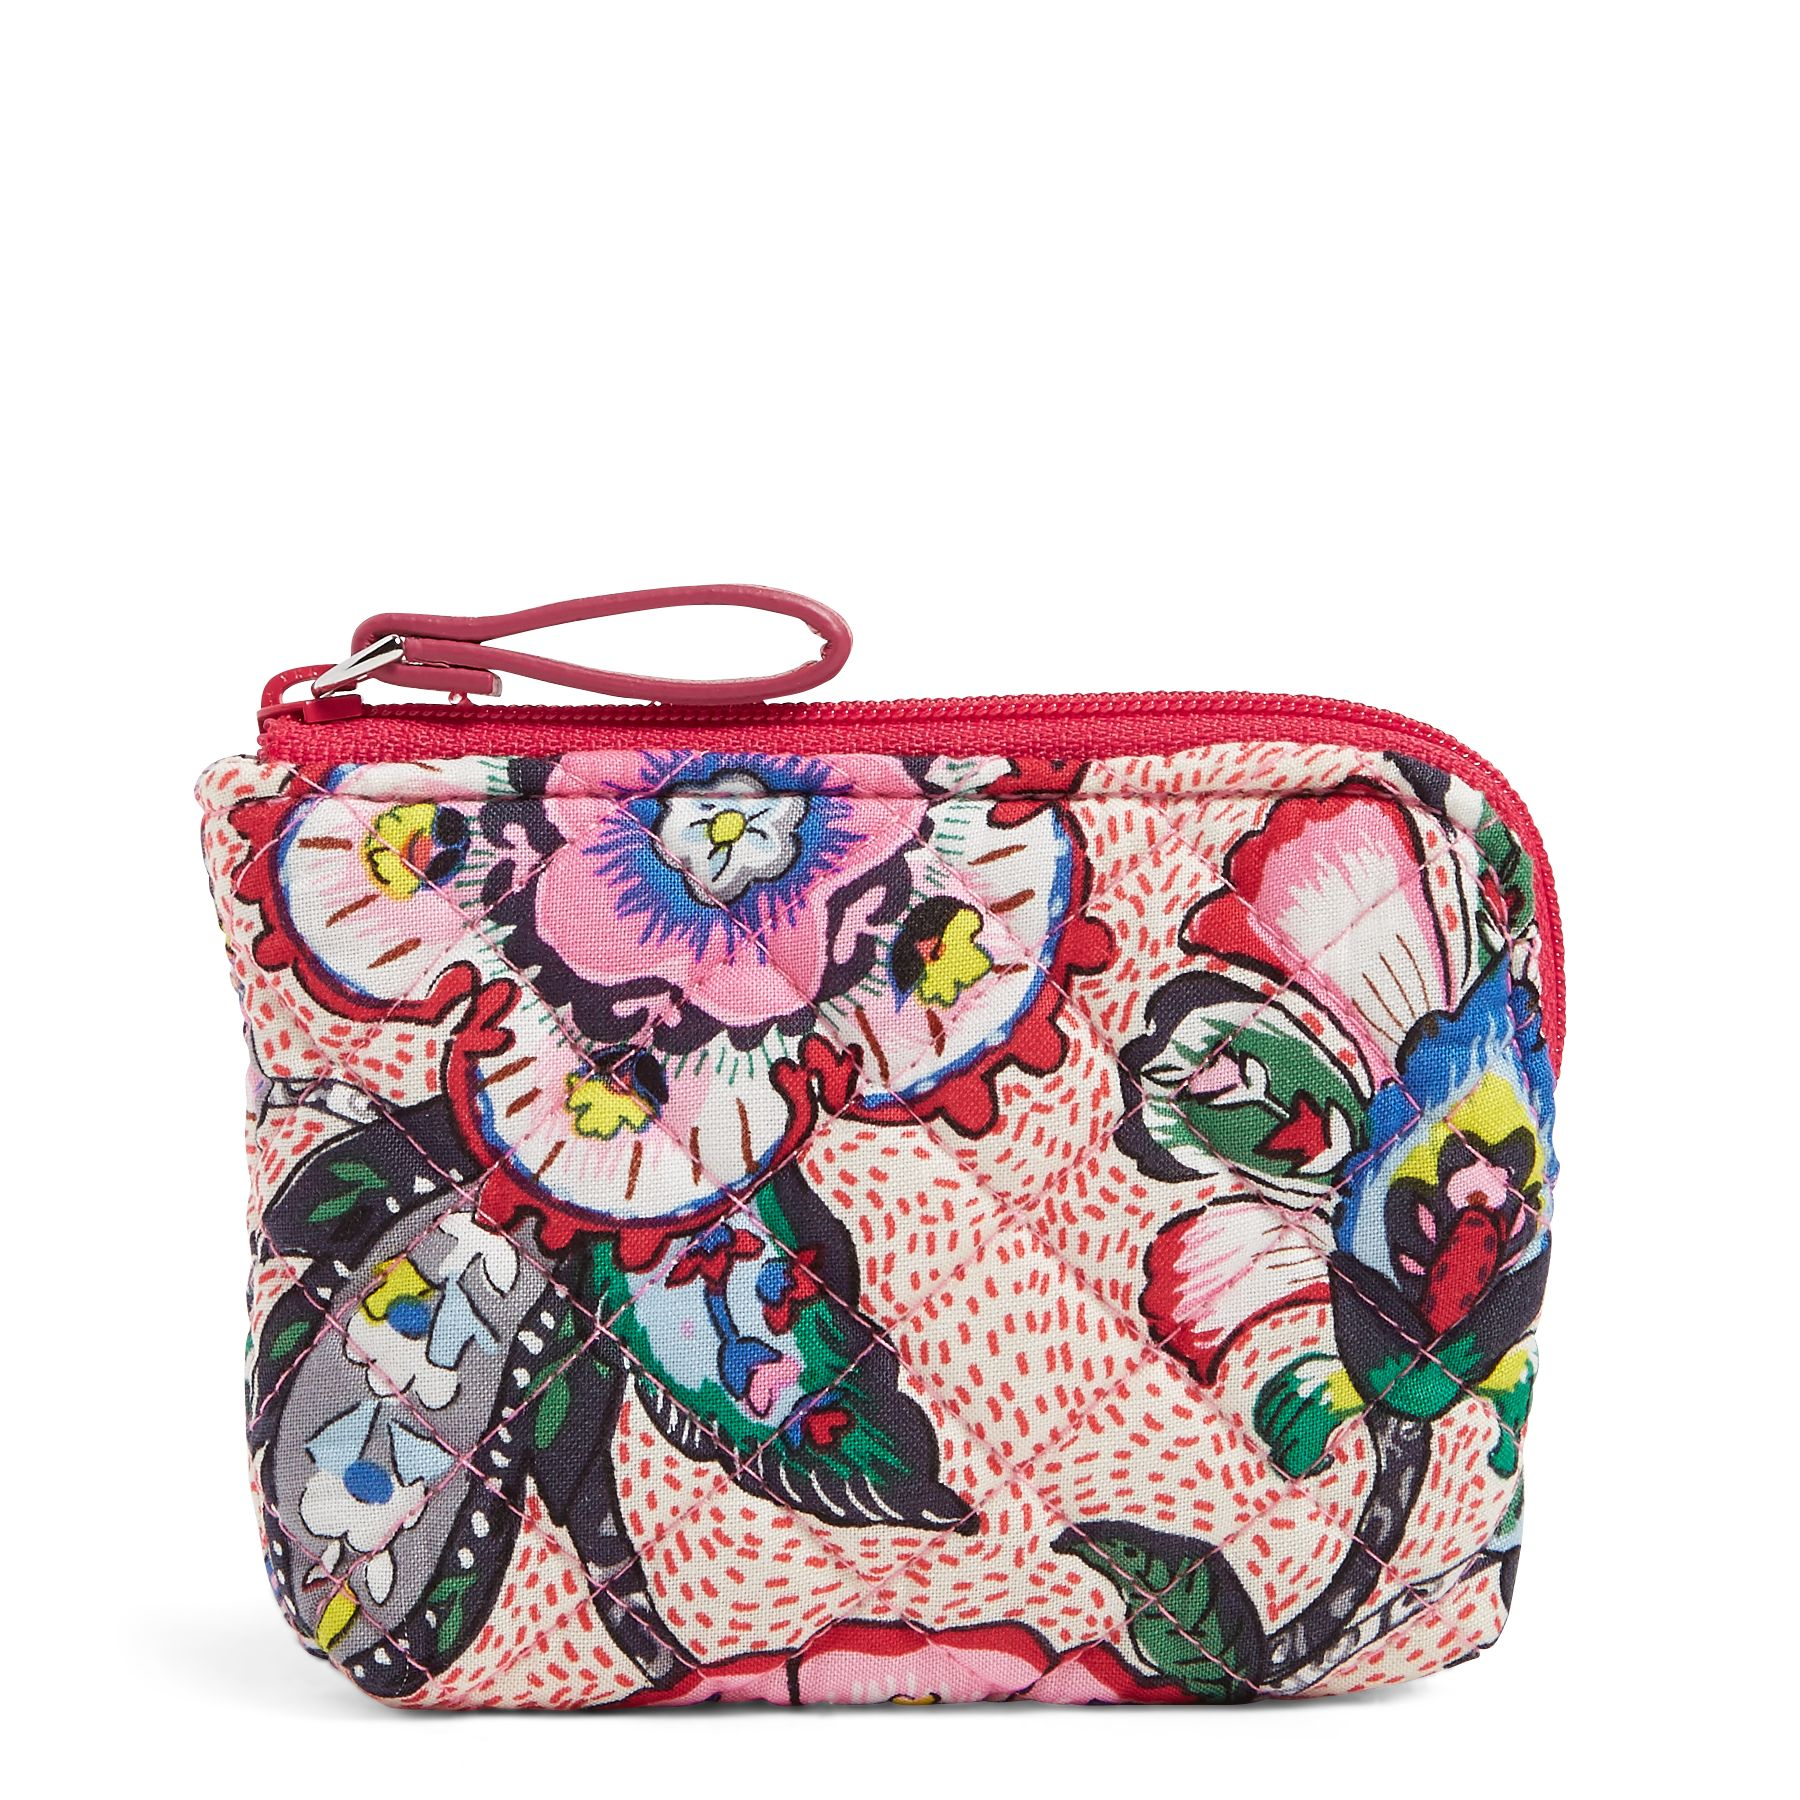 Vera Bradley Iconic Coin Purse, Pink (886003560198 Accessories) photo